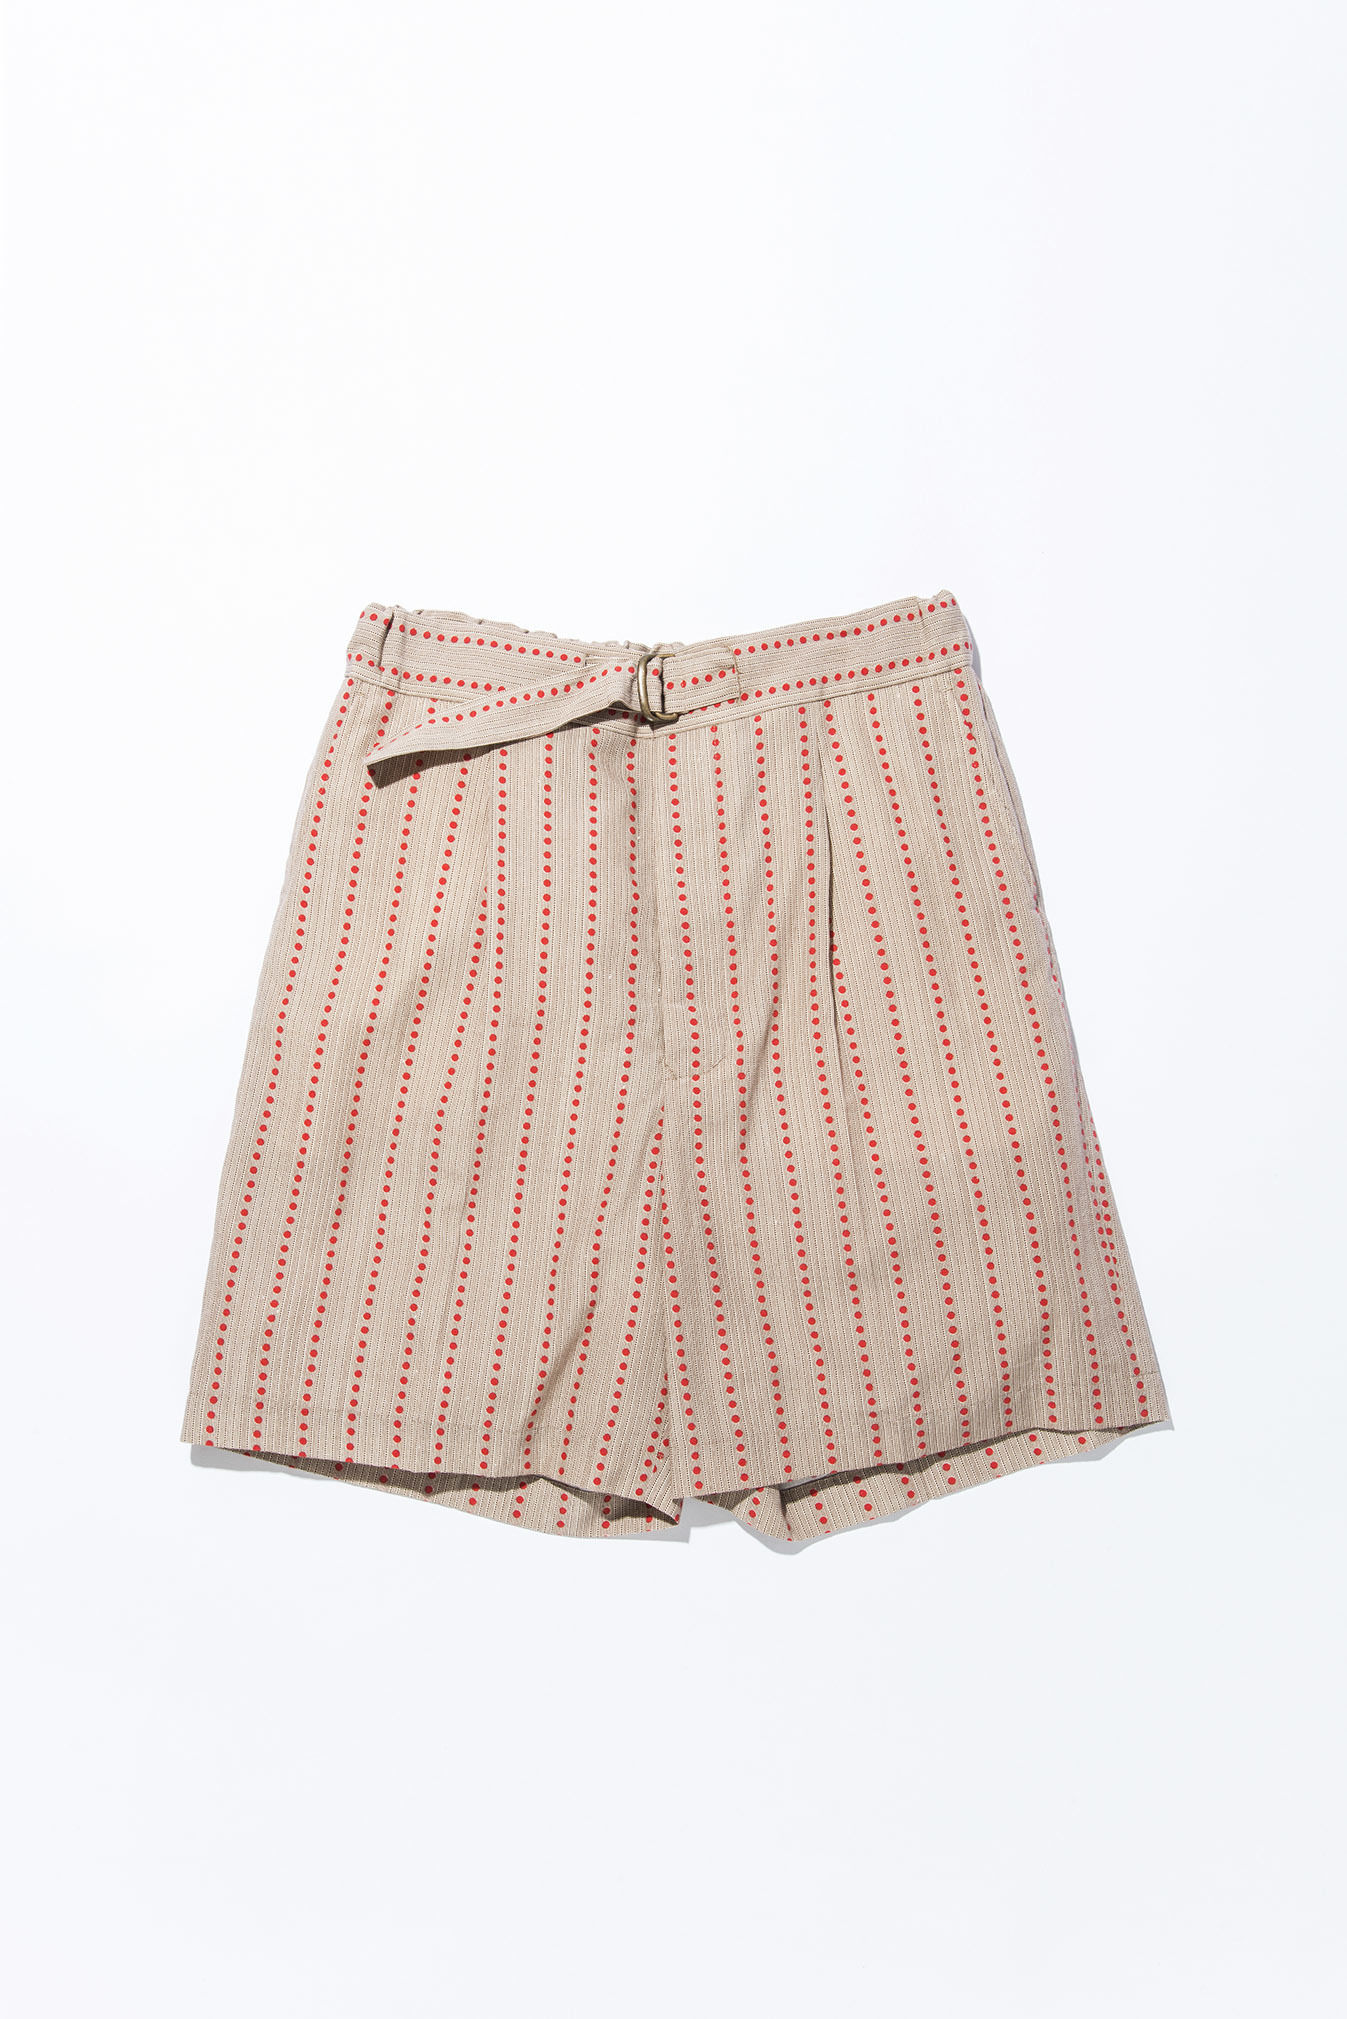 UNITUS(ユナイタス) SS17 Belted Easy Printed Red Stripe